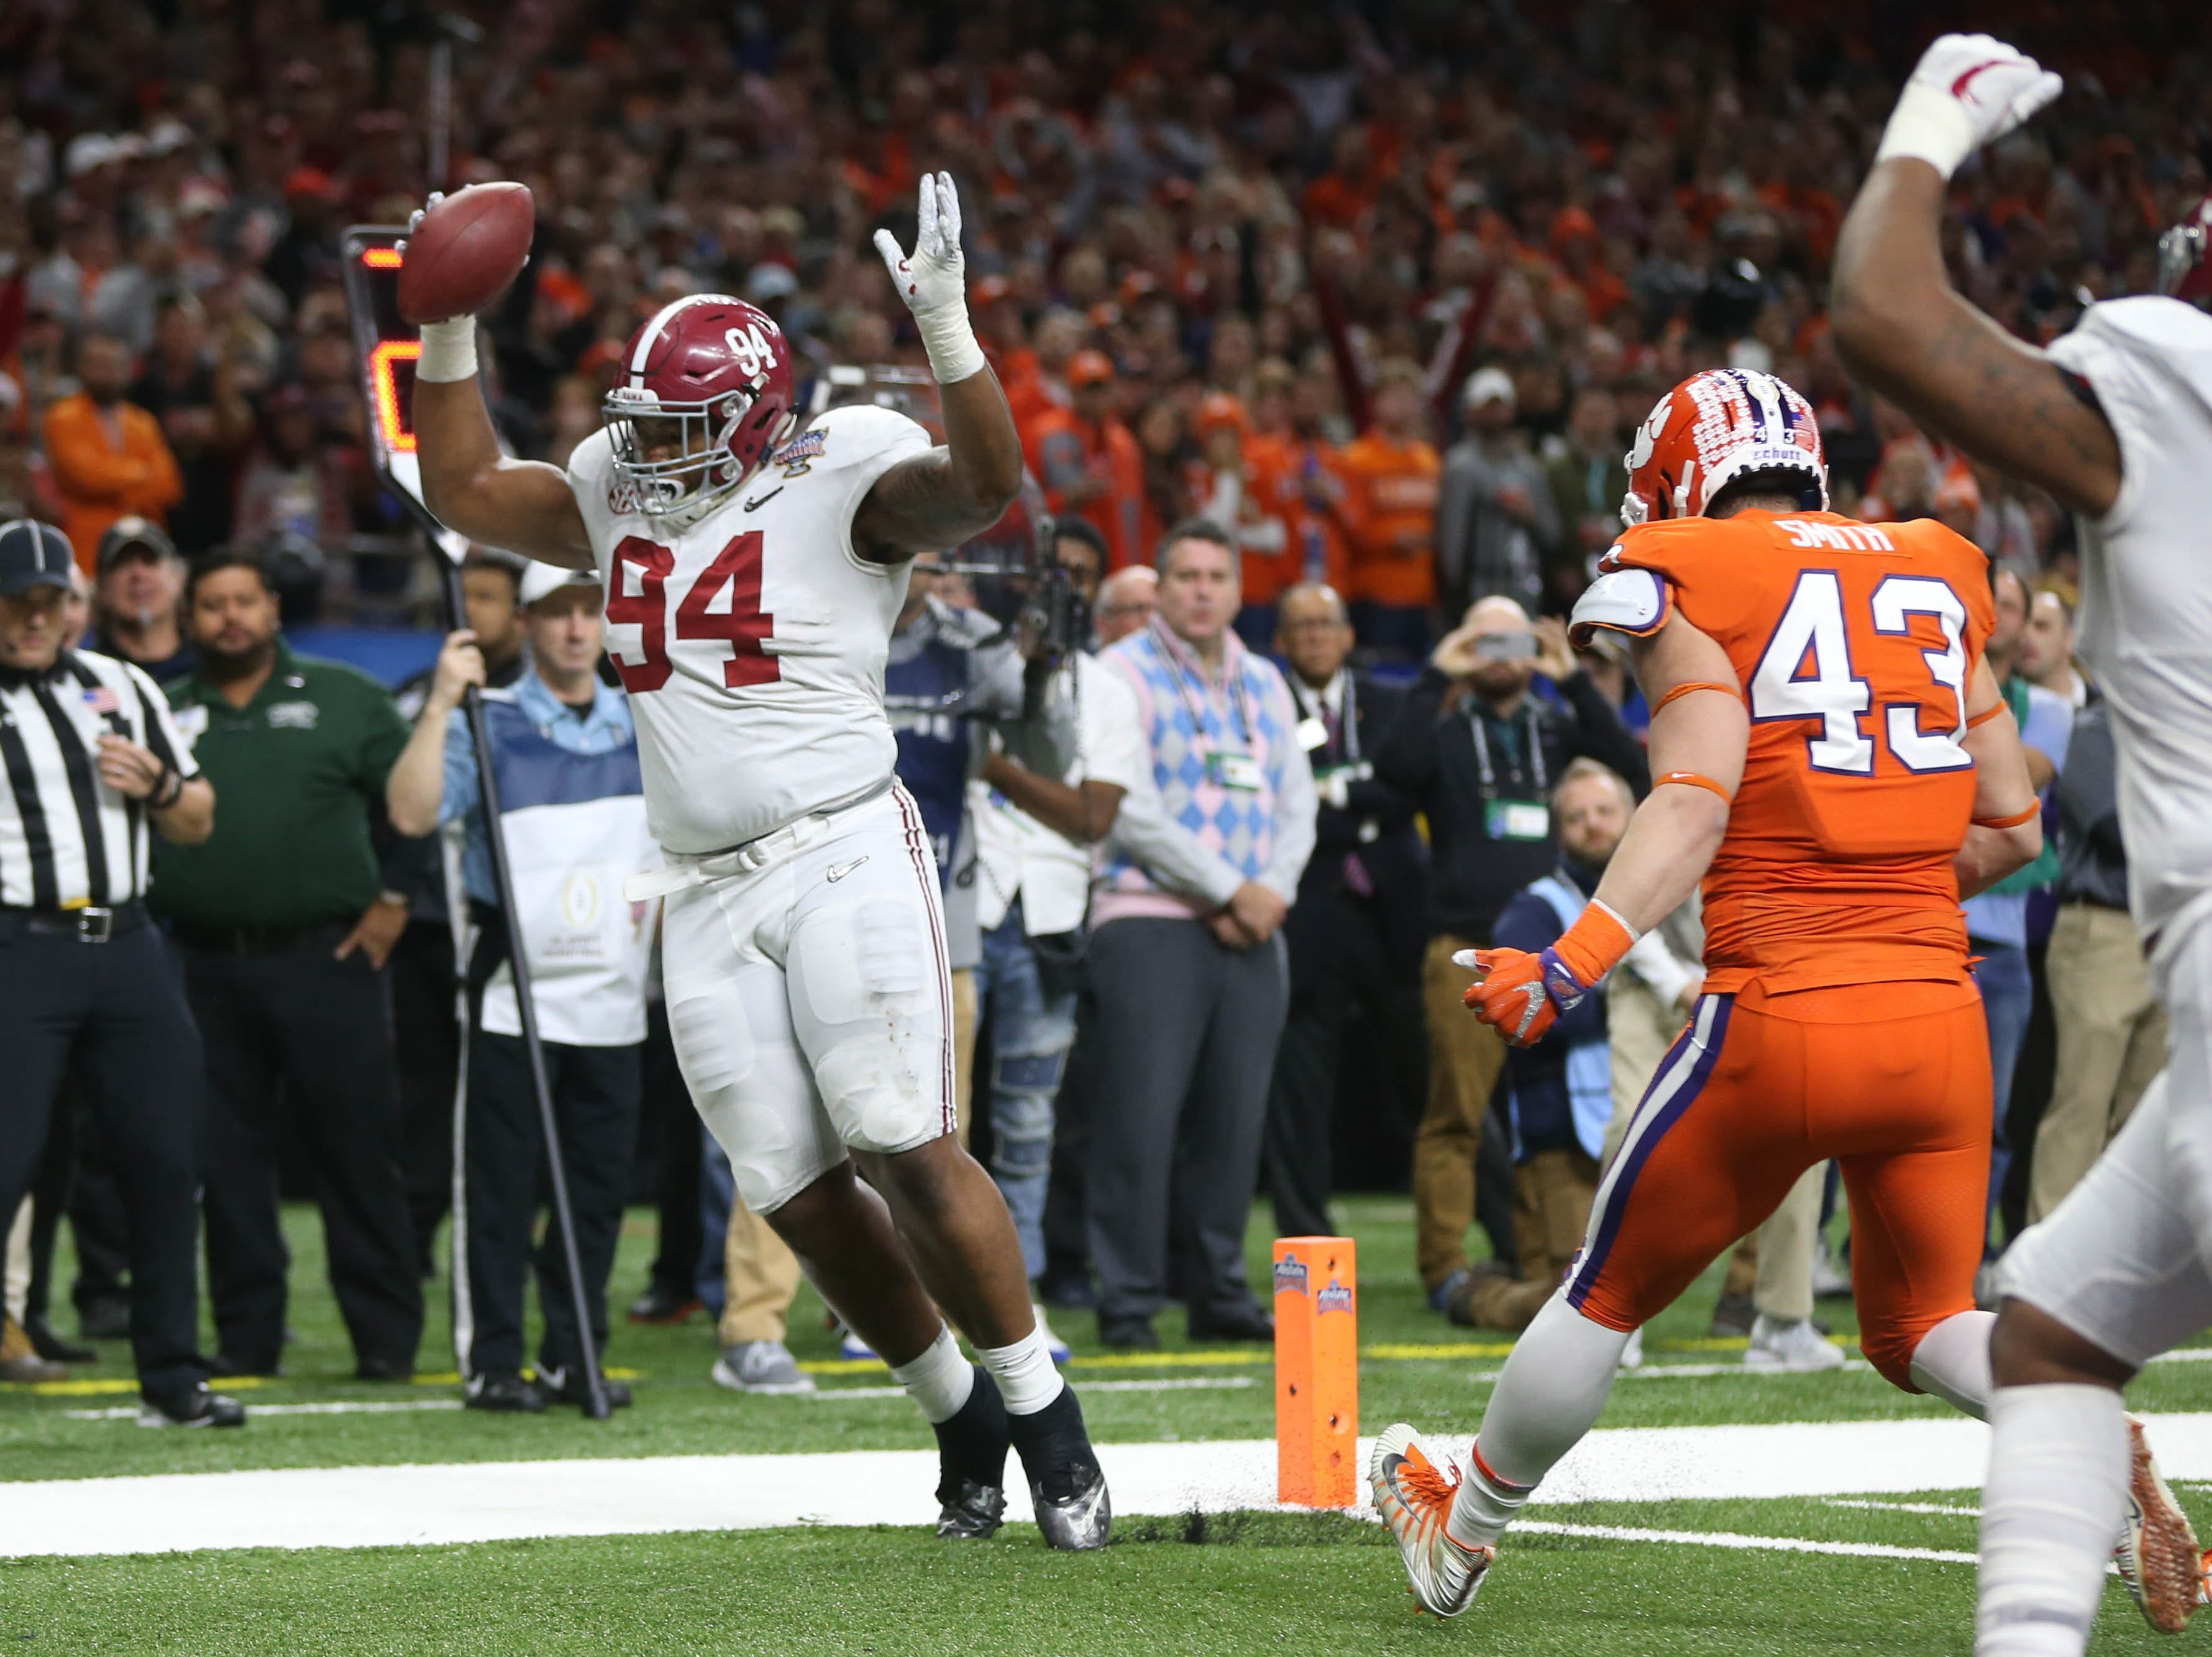 Jan. 1: Alabama Crimson Tide defensive lineman Daron Payne (94) catches a touchdown pass during the third quarter against the Clemson Tigers in the Sugar Bowl.